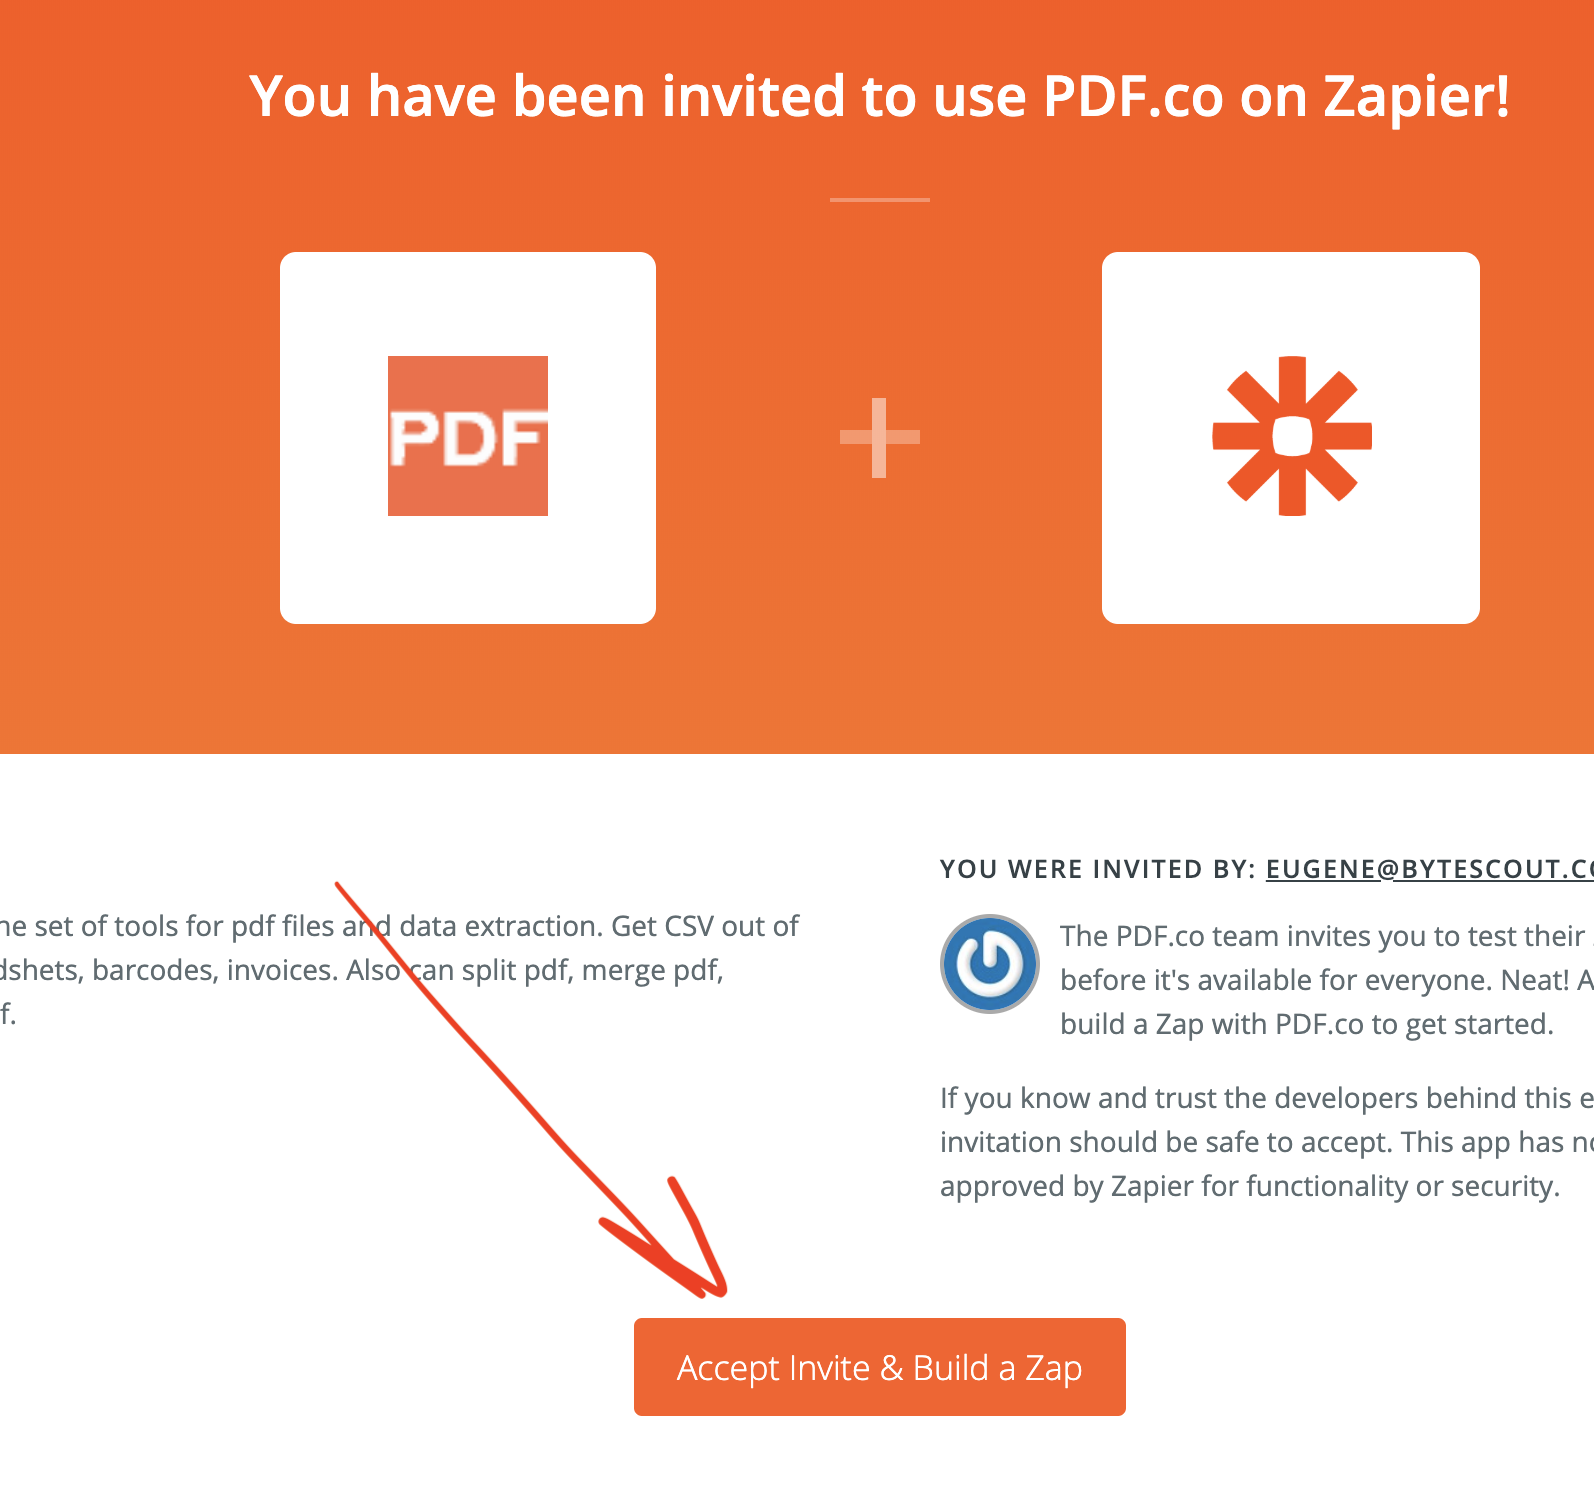 accept invite for PDF.co Zapier plugin to add PDf.co to your Zapier account